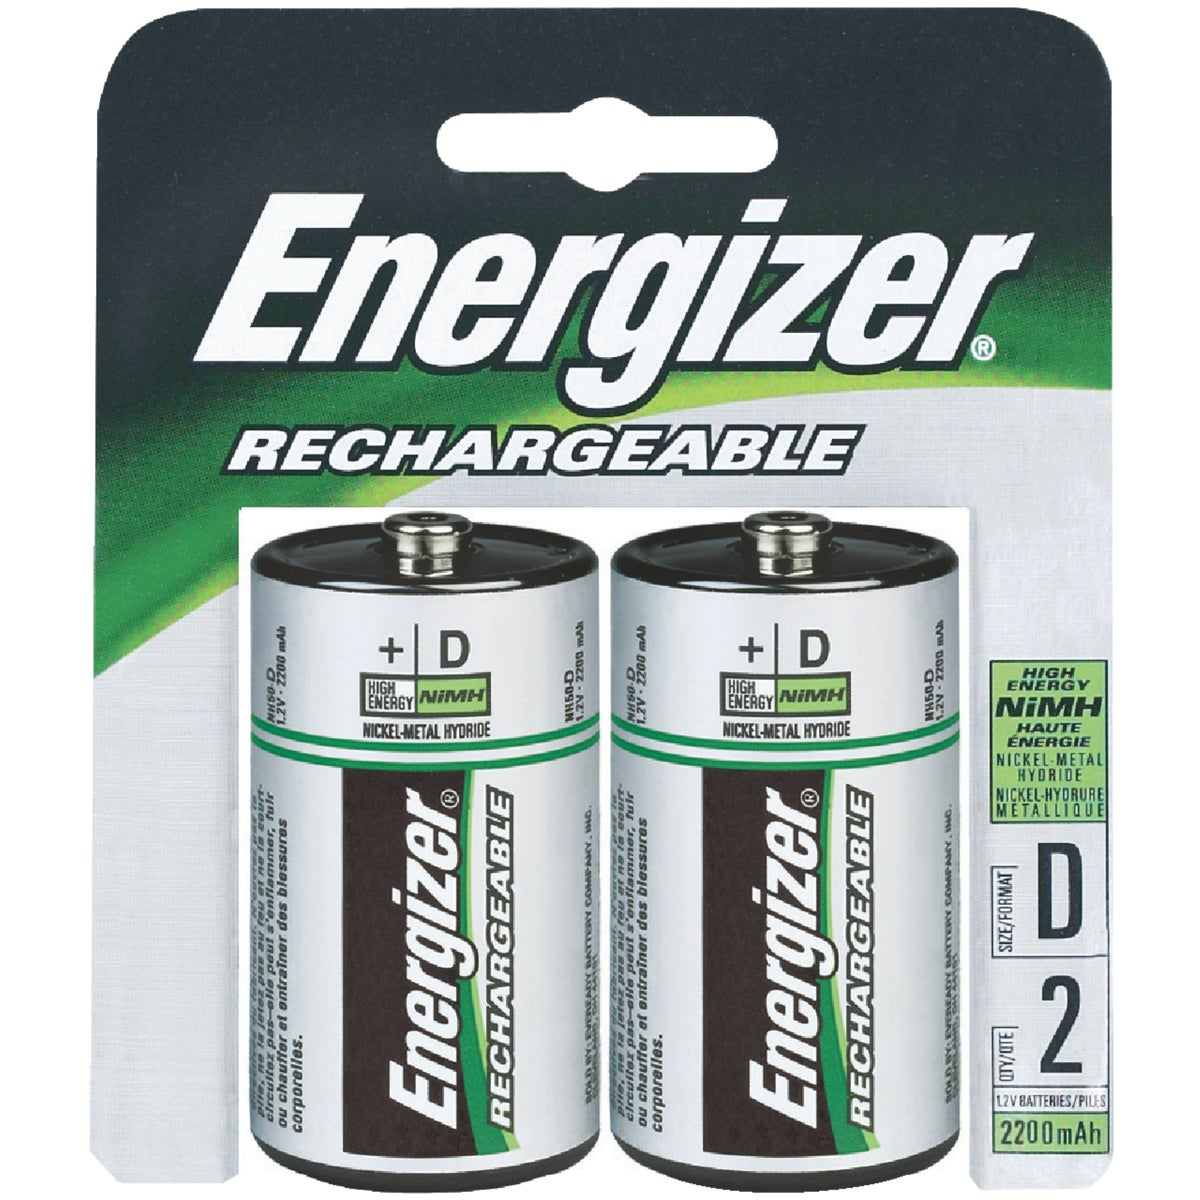 2CD D RECHARGE BATTERY